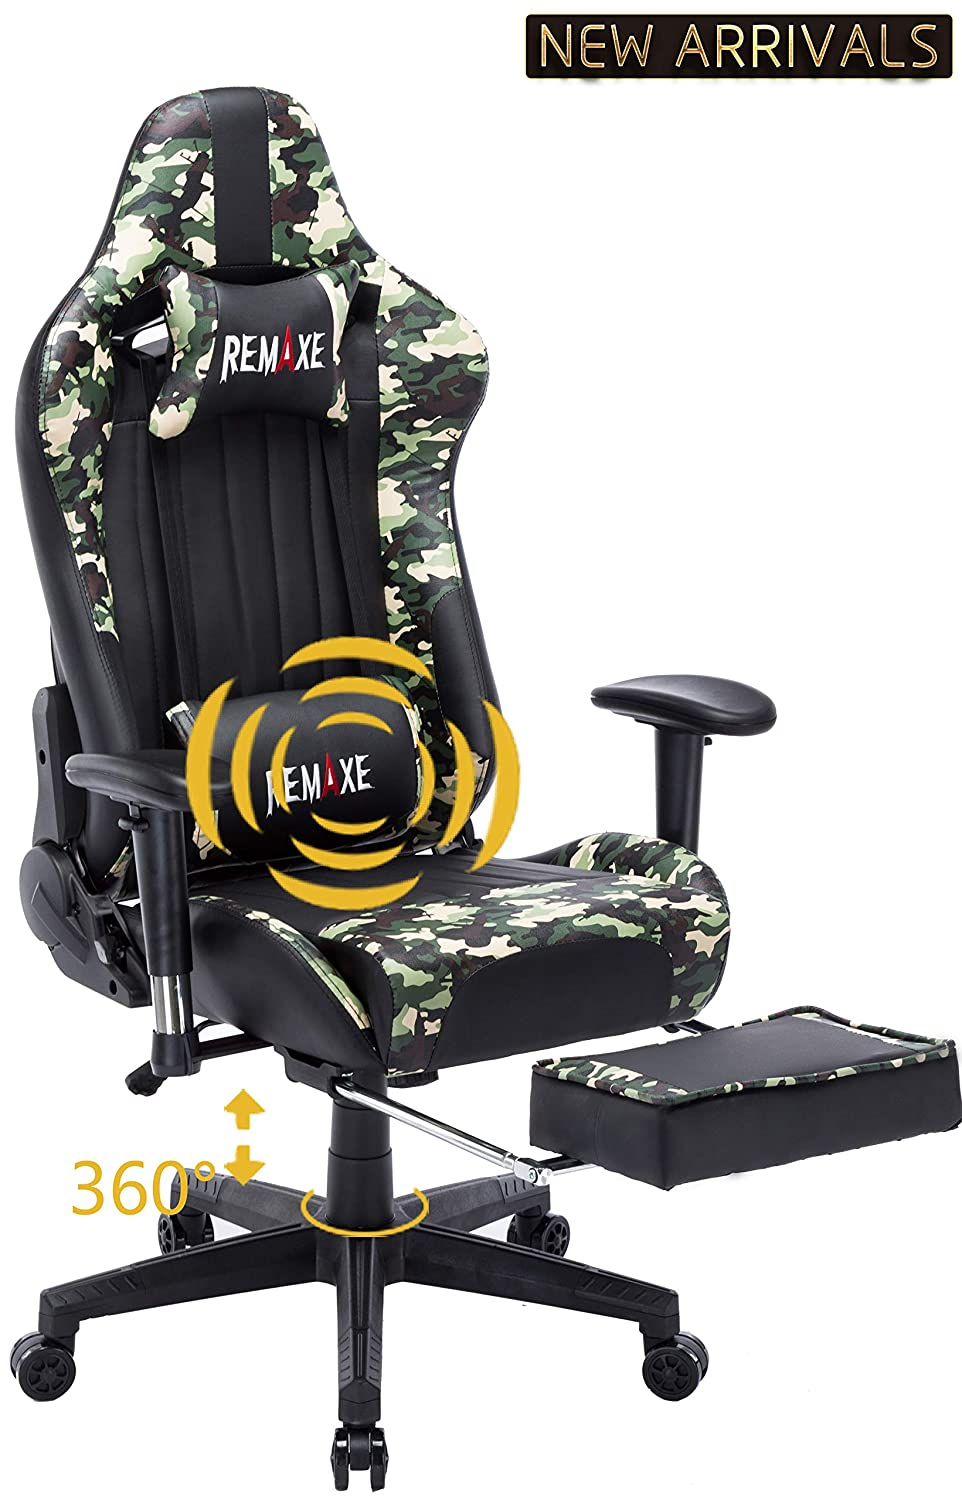 Black&Camo Large Size Computer Gaming Chair Ergomonic Racing Chair with Retractable Footrest,Execultive PU Leather Headrest Lumbar Massager Cushion Ergonomic Swivel PC Chair for Home(Black)